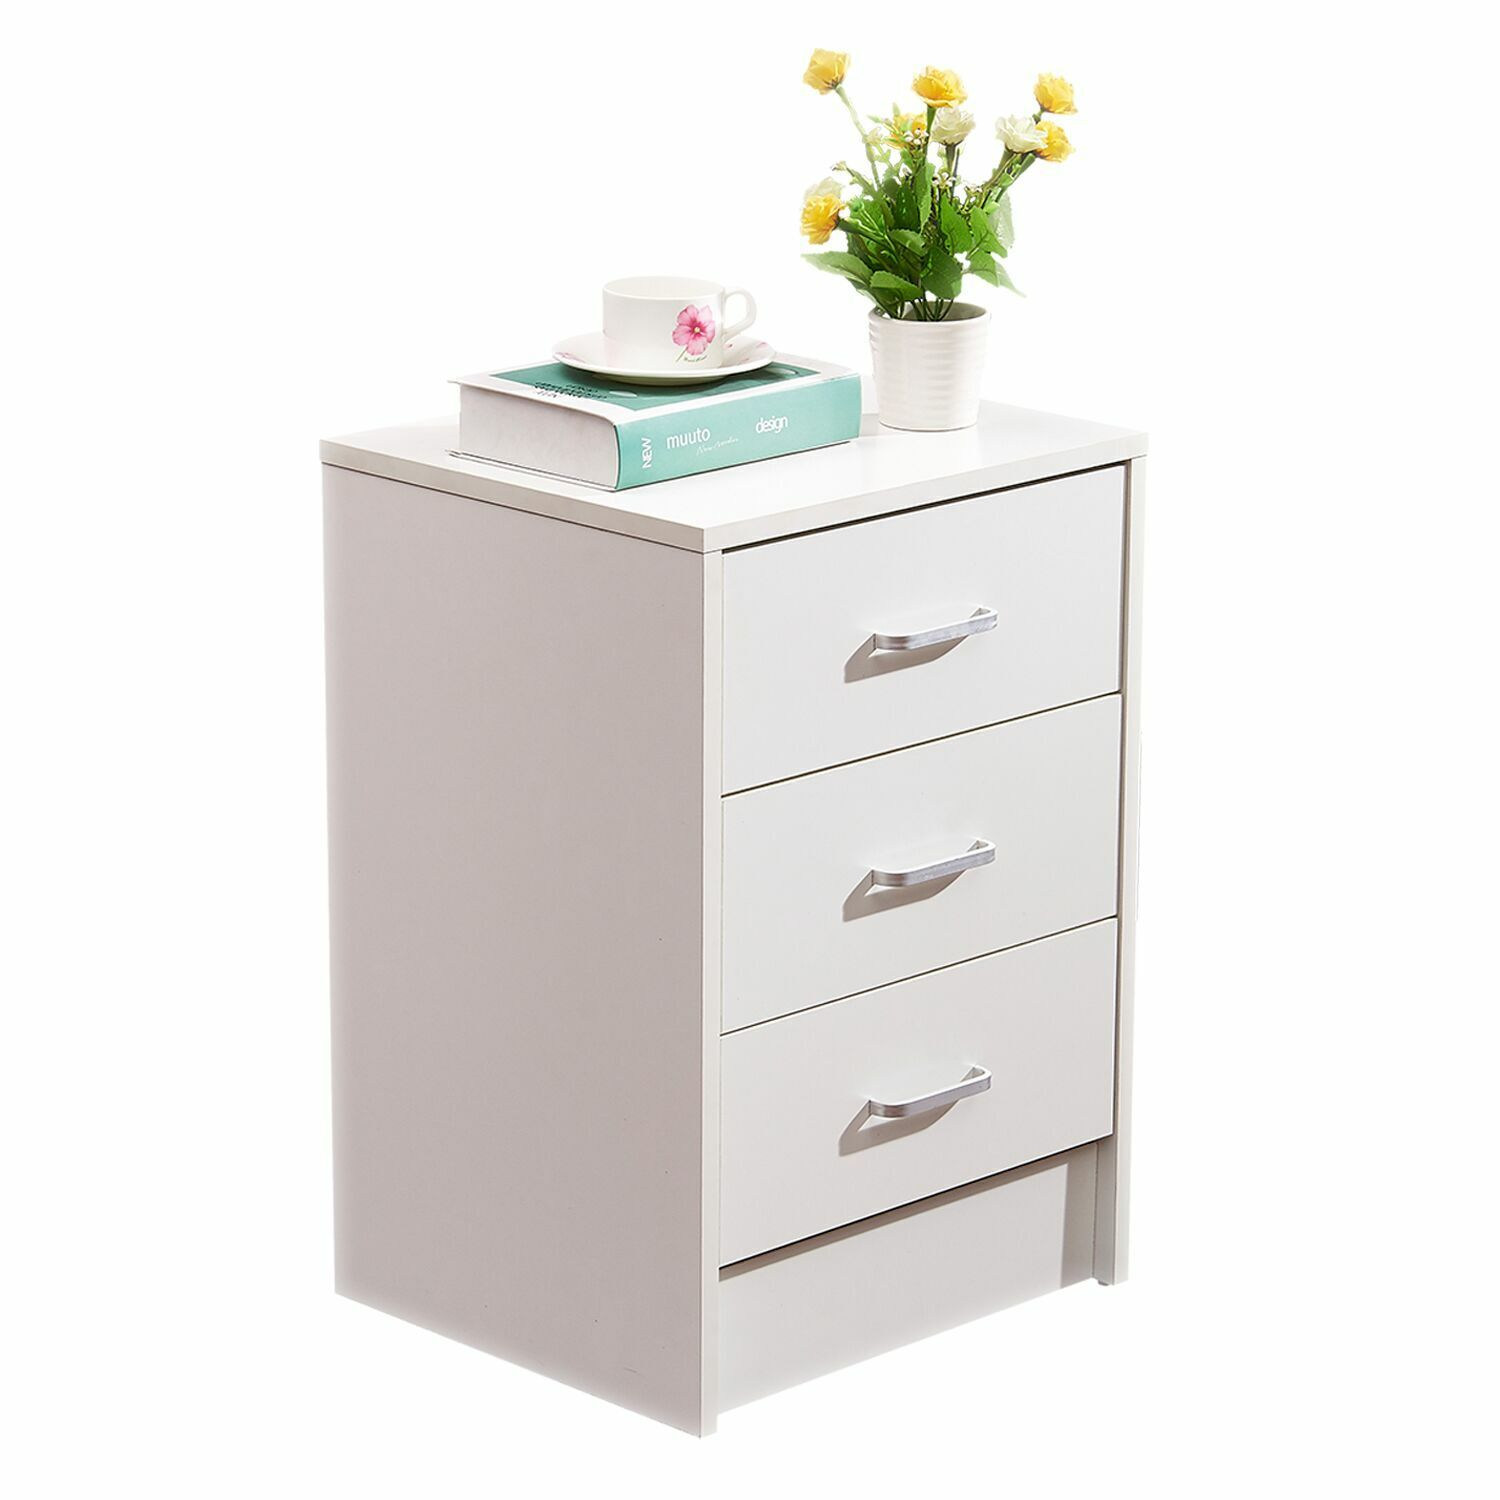 File Cabinet Table Desk Nightstand 3 Drawer File Storage for